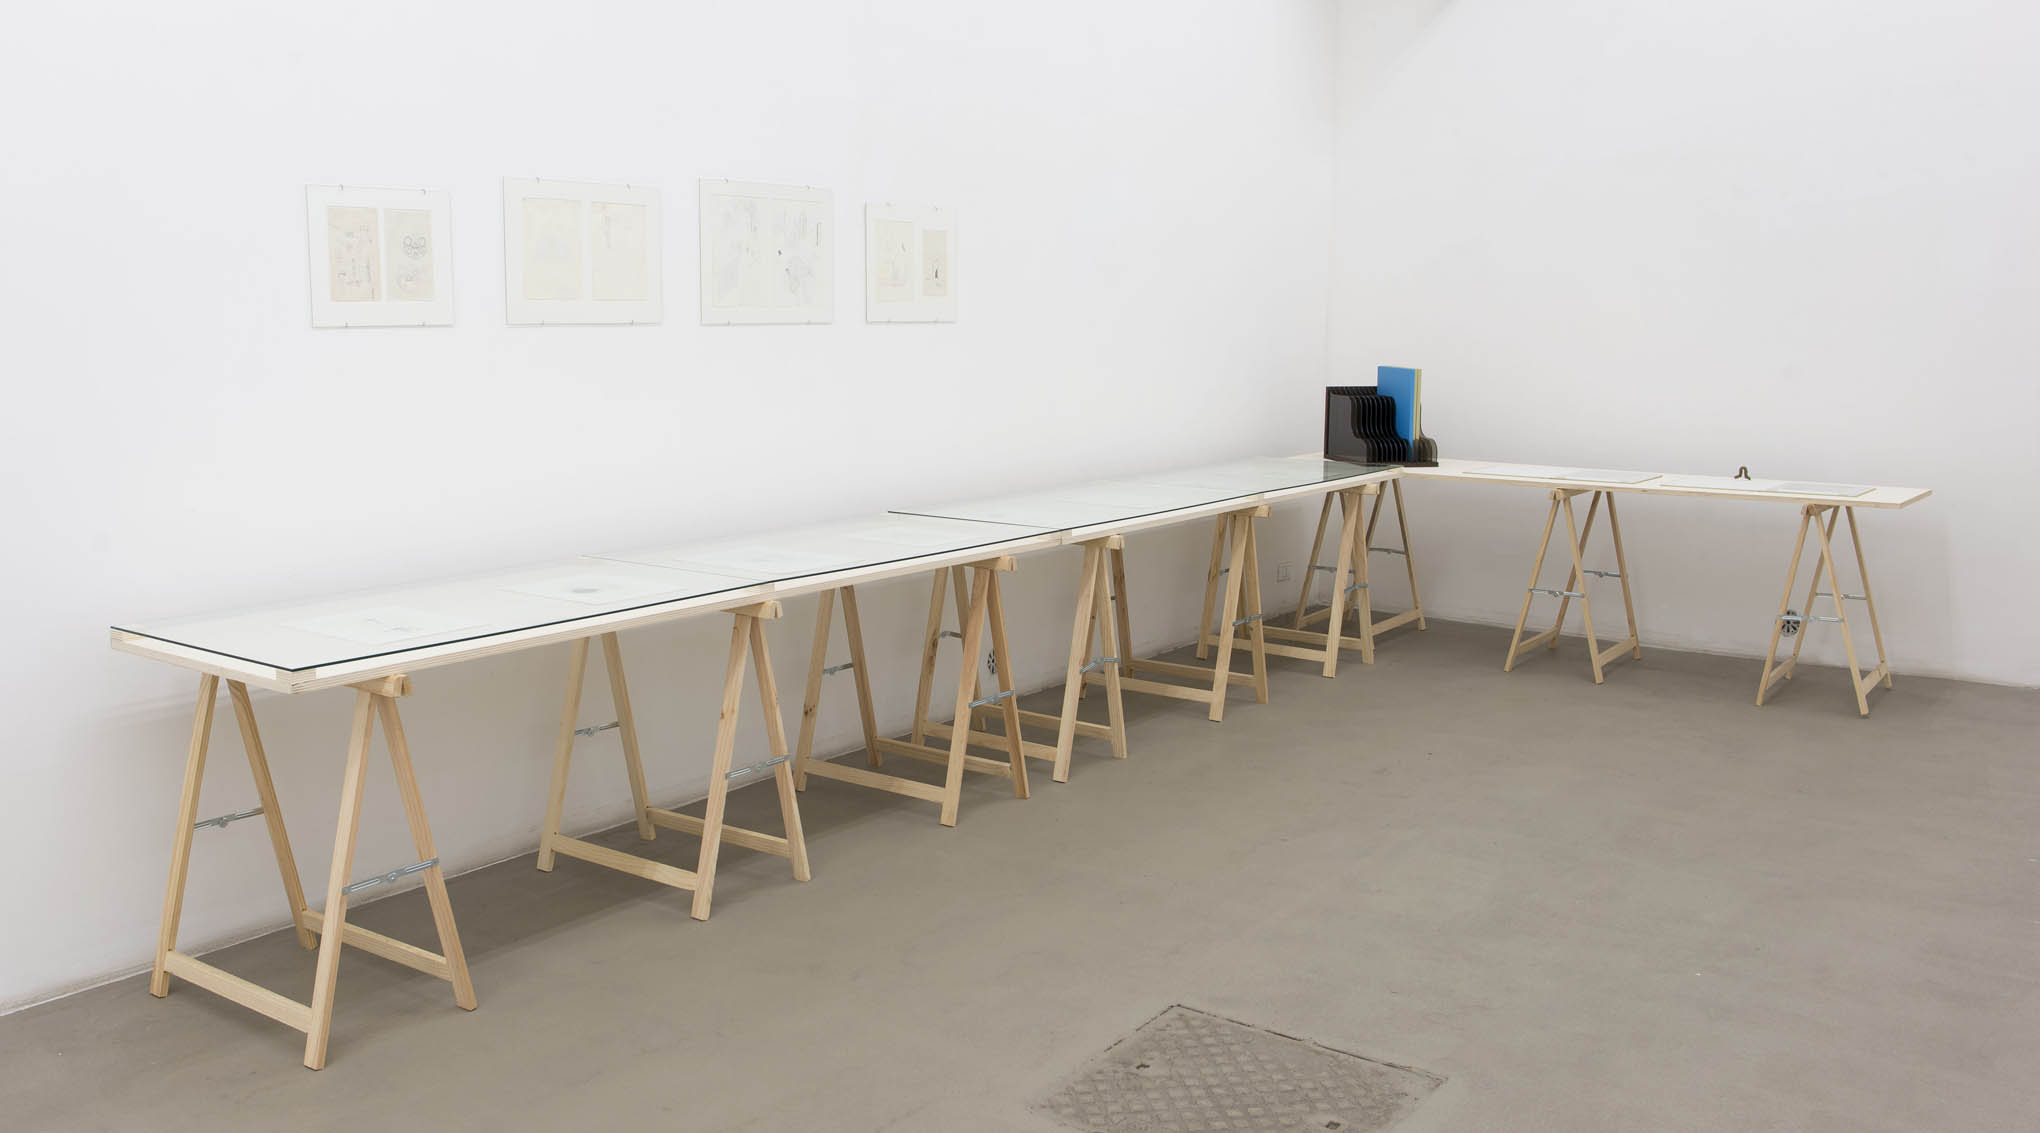 15_FG_Consequences_Installation view_6